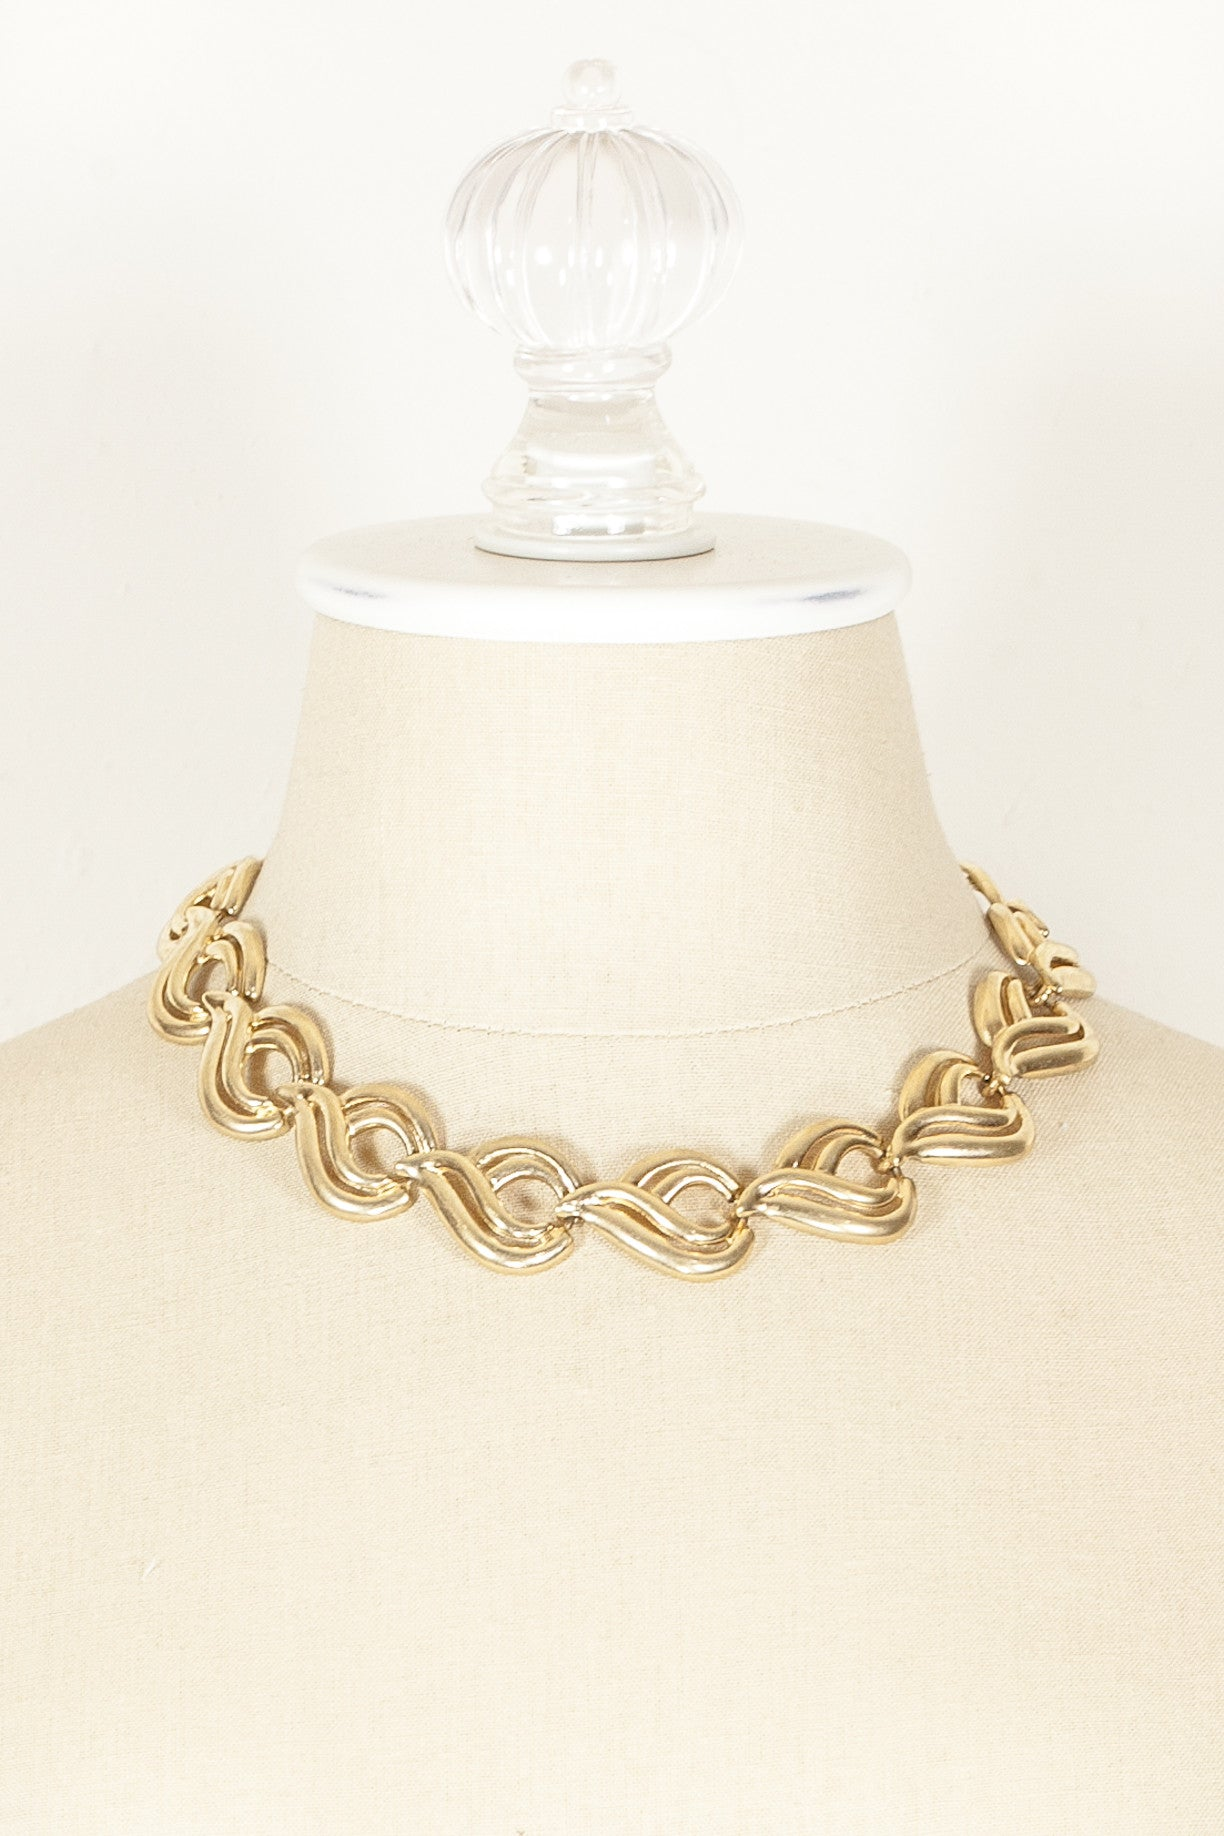 70's__Krementz__Swirl Statement Necklace